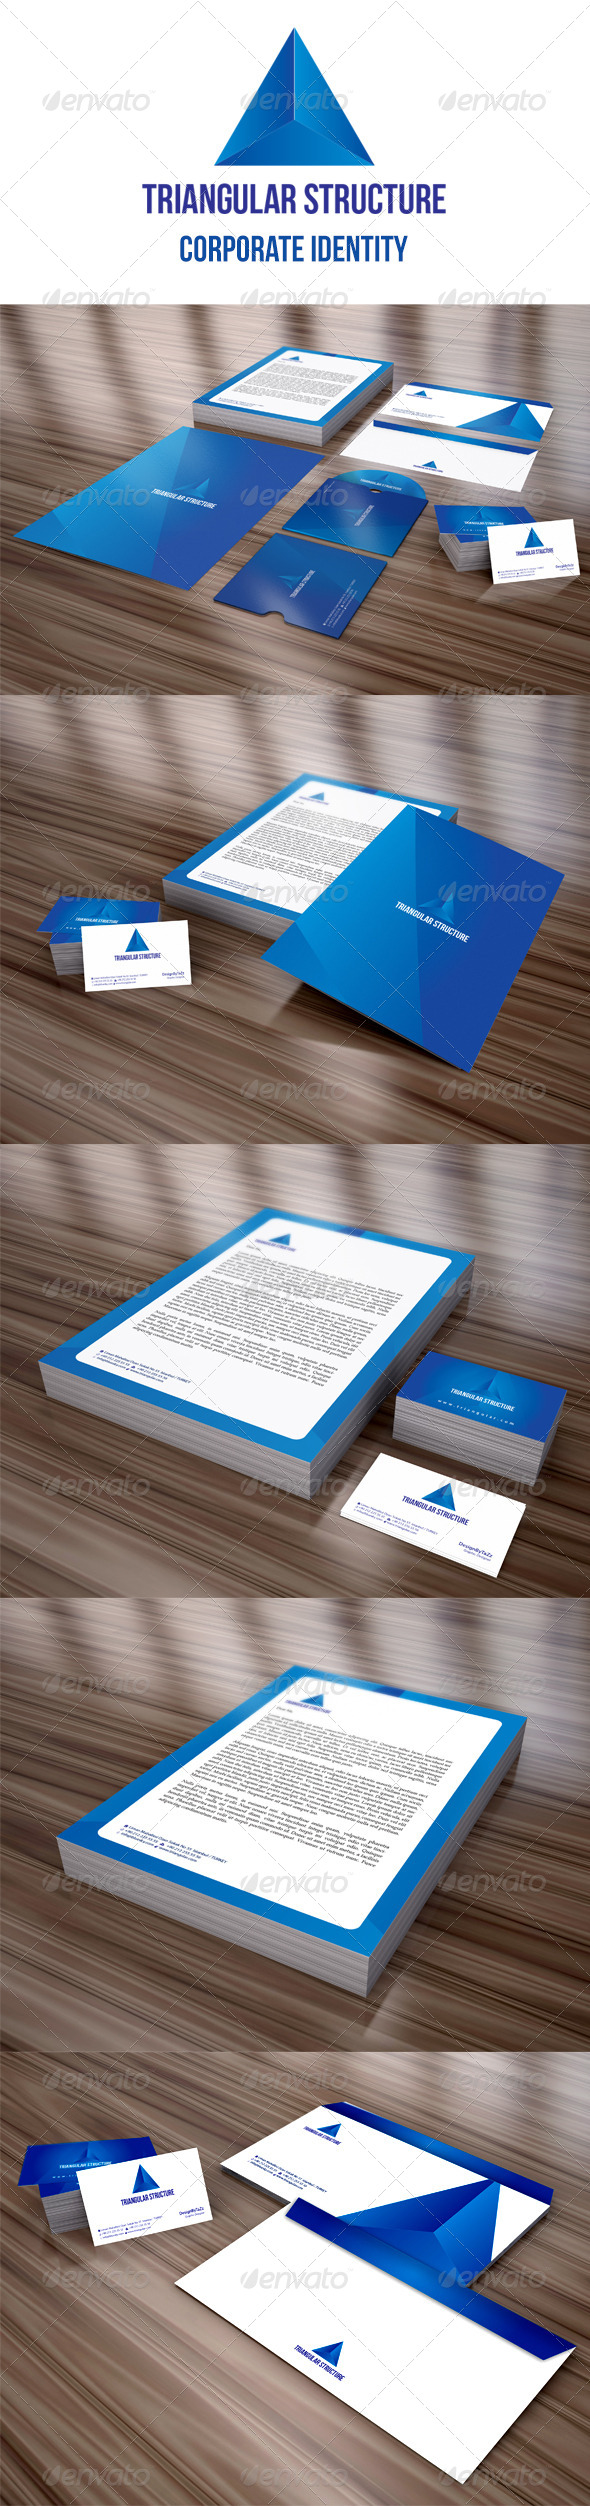 Triangular Structure Corporate Identity Package - Stationery Print Templates